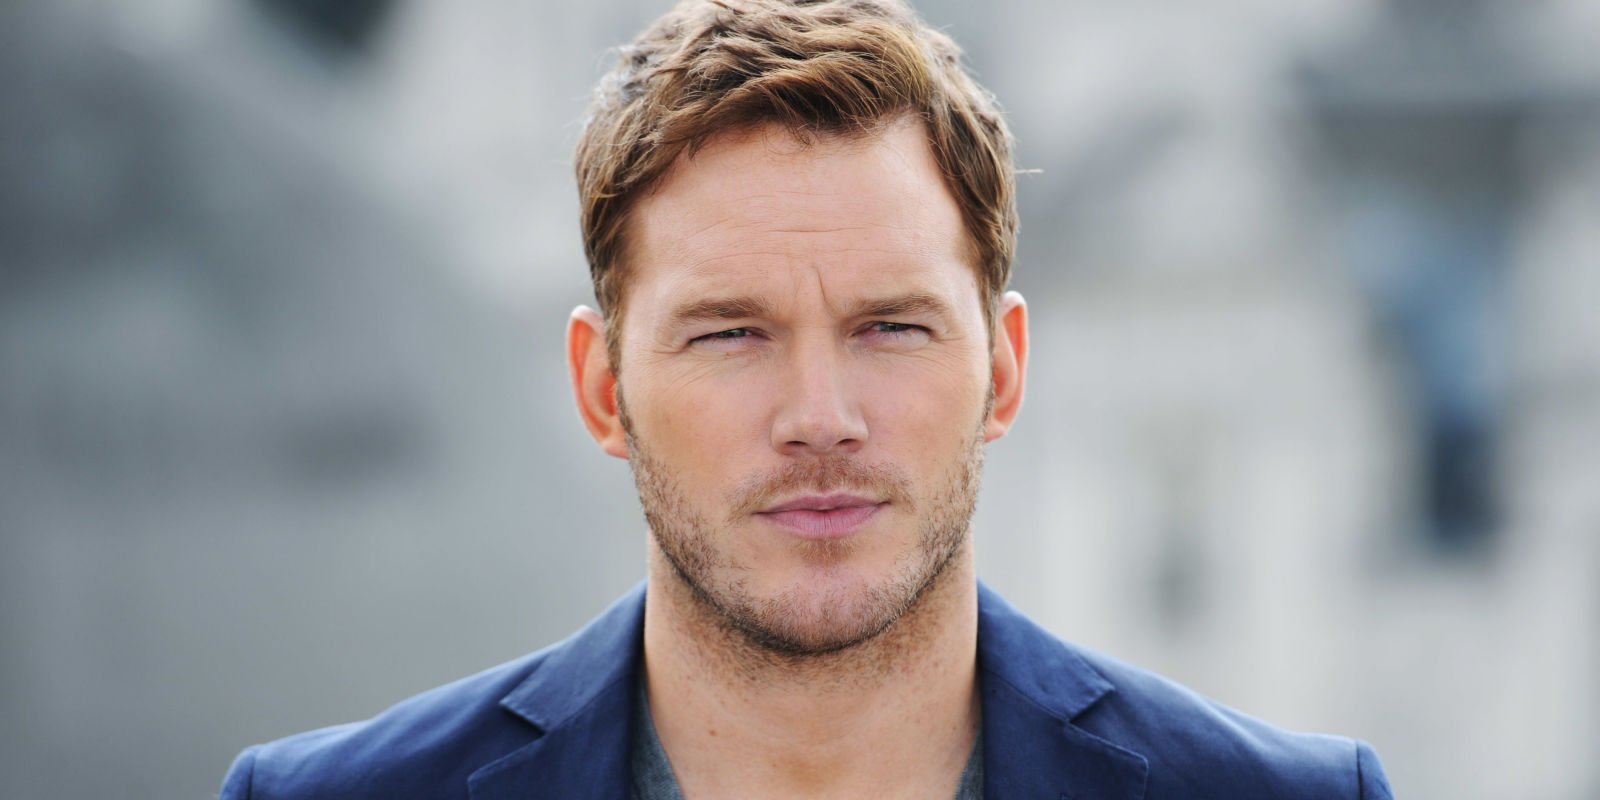 Chris Pratt Says Blue Collar America Isn't Represented in Hollywood https://t.co/XbkEzVVOsD https://t.co/jiHeKmrWEn